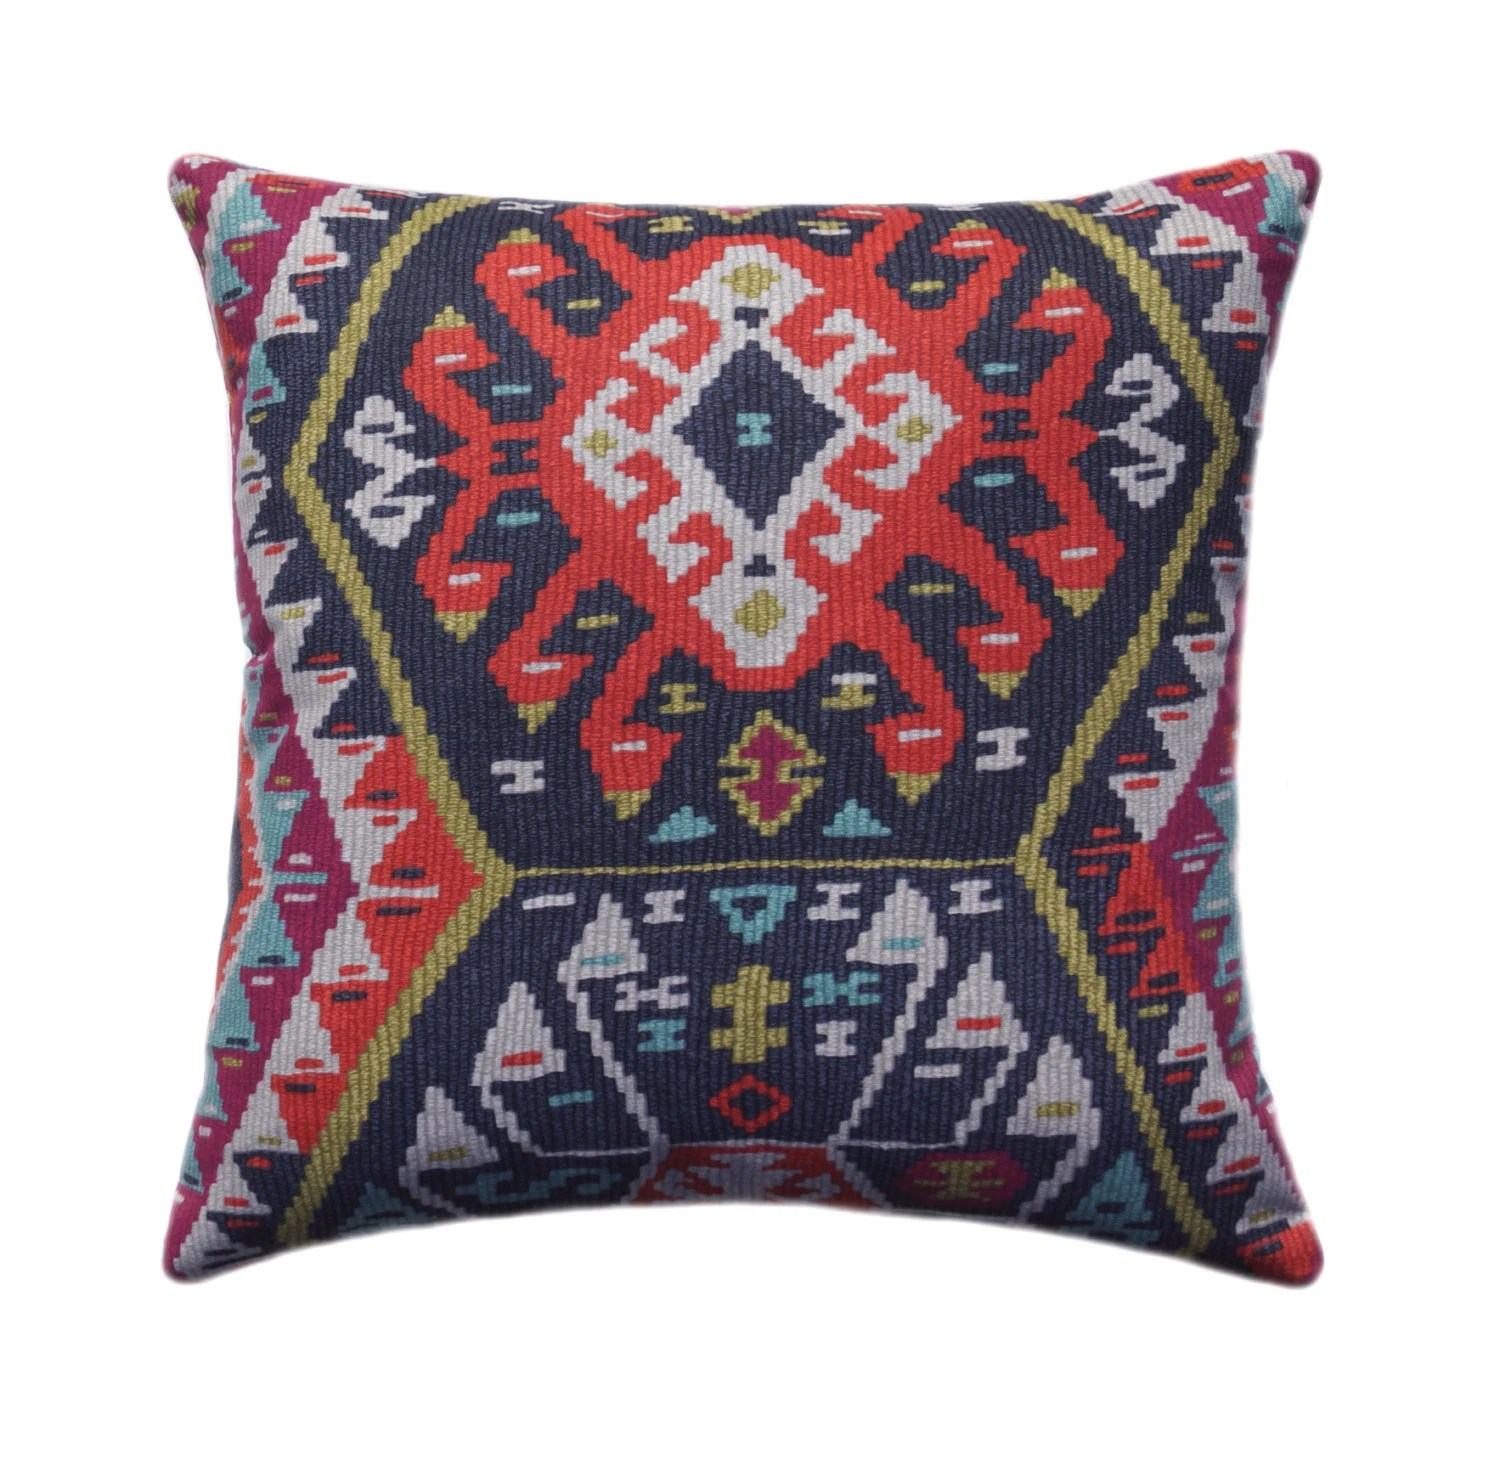 Kilim Paris Kilim Pillow Cover Tribal Throw Pillow Aztec Pillow Cover Boho Pillow 11 Sizes Longrock Fiesta Pillow Cover With Hidden Zipper